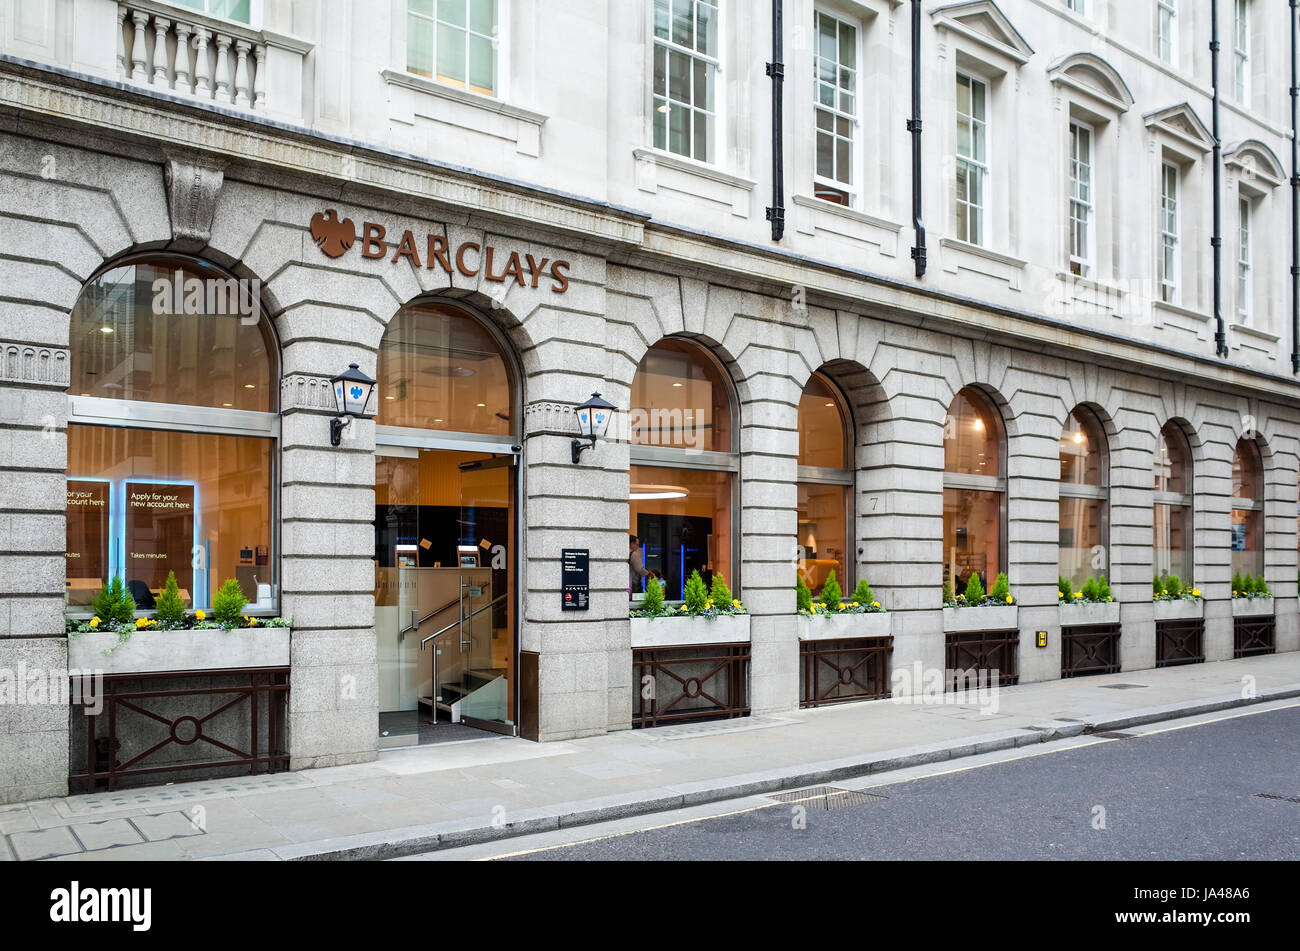 Barclays Bank in King Street in London's Financial District the City of London or Square Mile - Stock Image